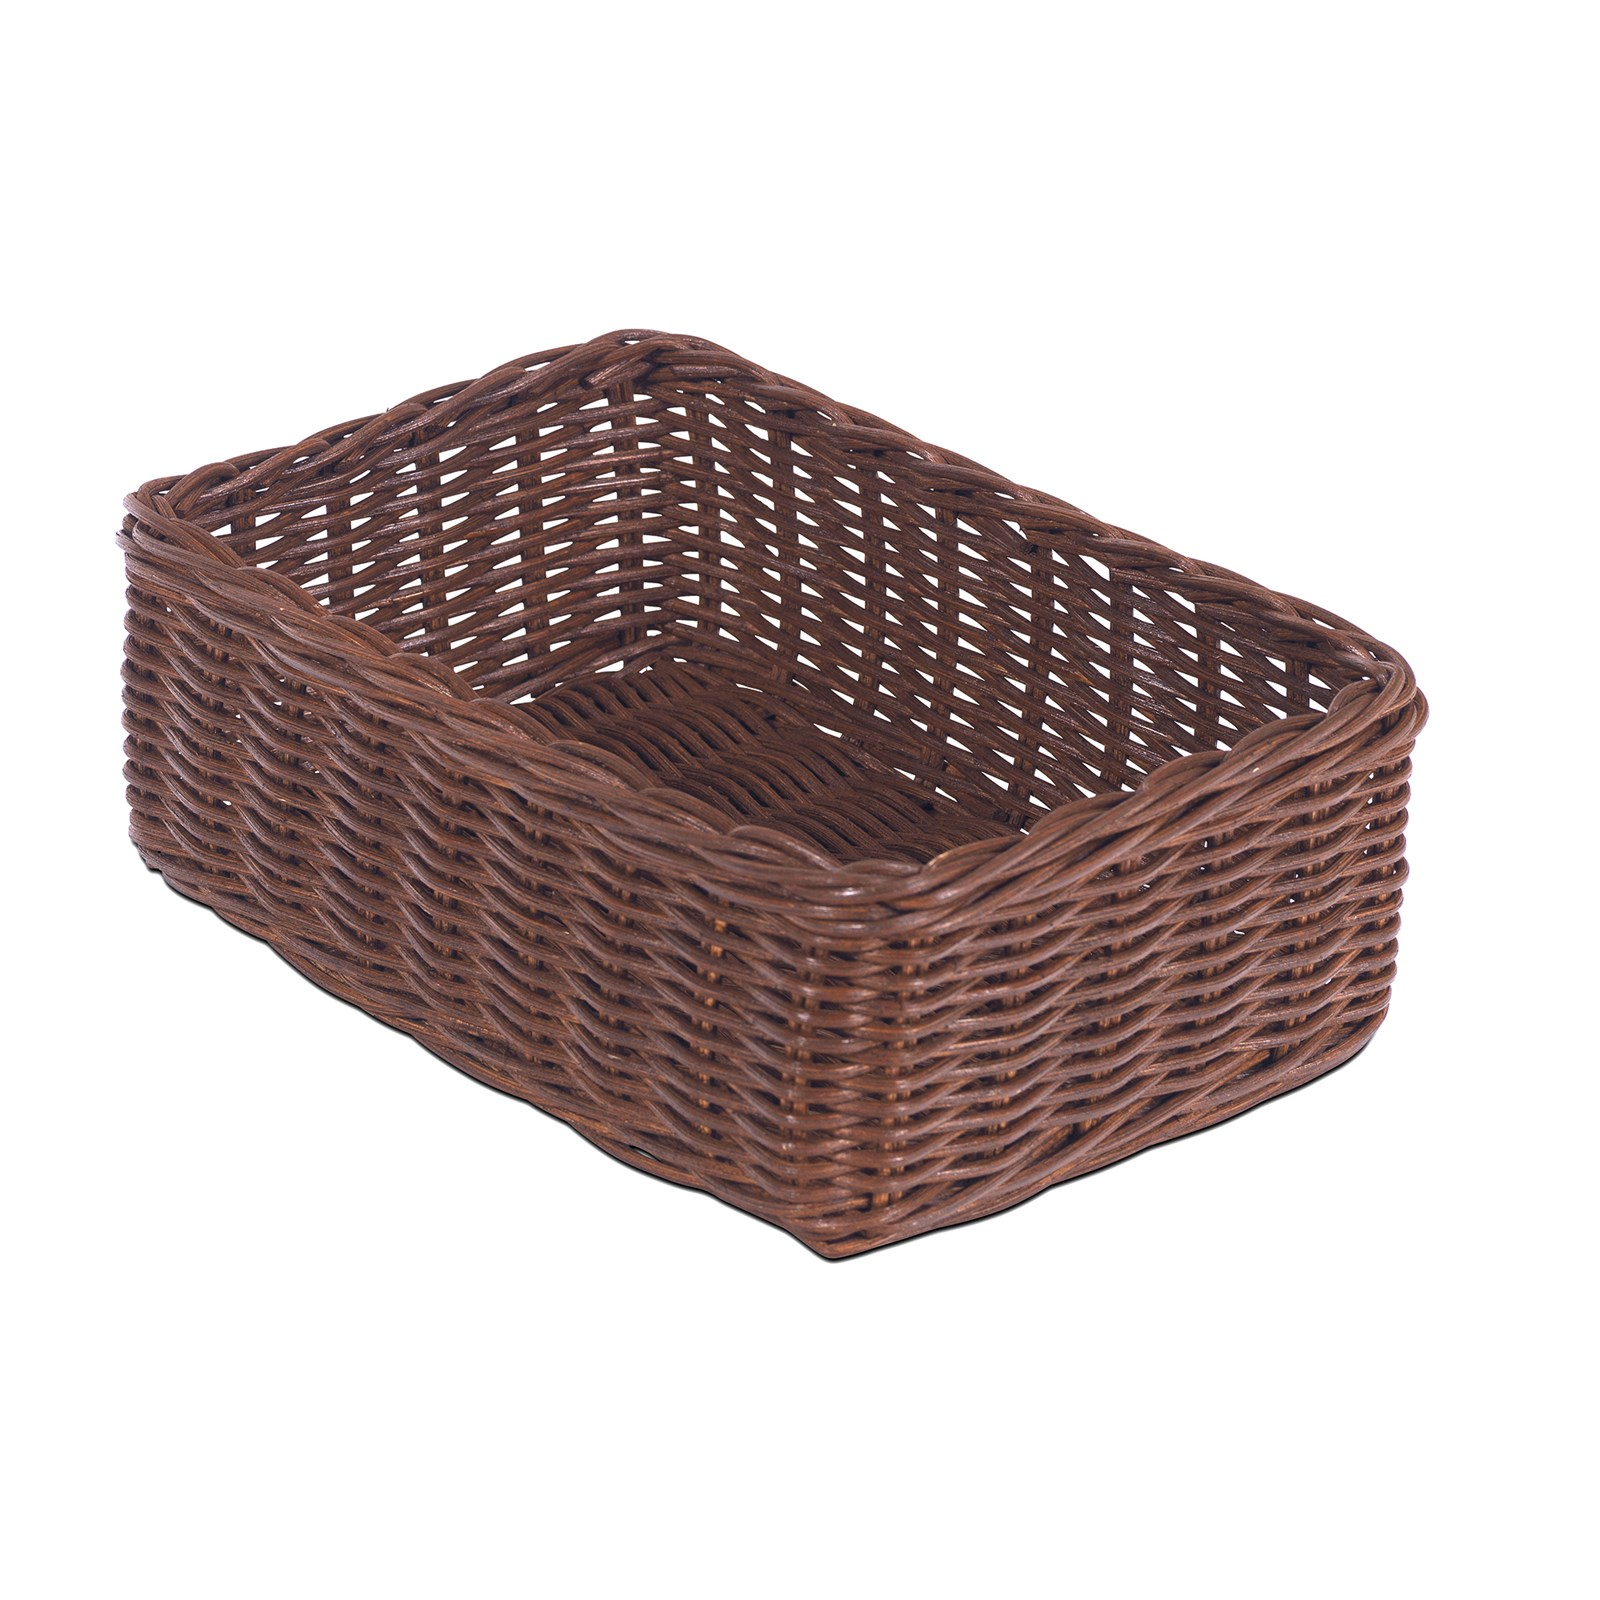 Playscapes Large Wicker Baskets